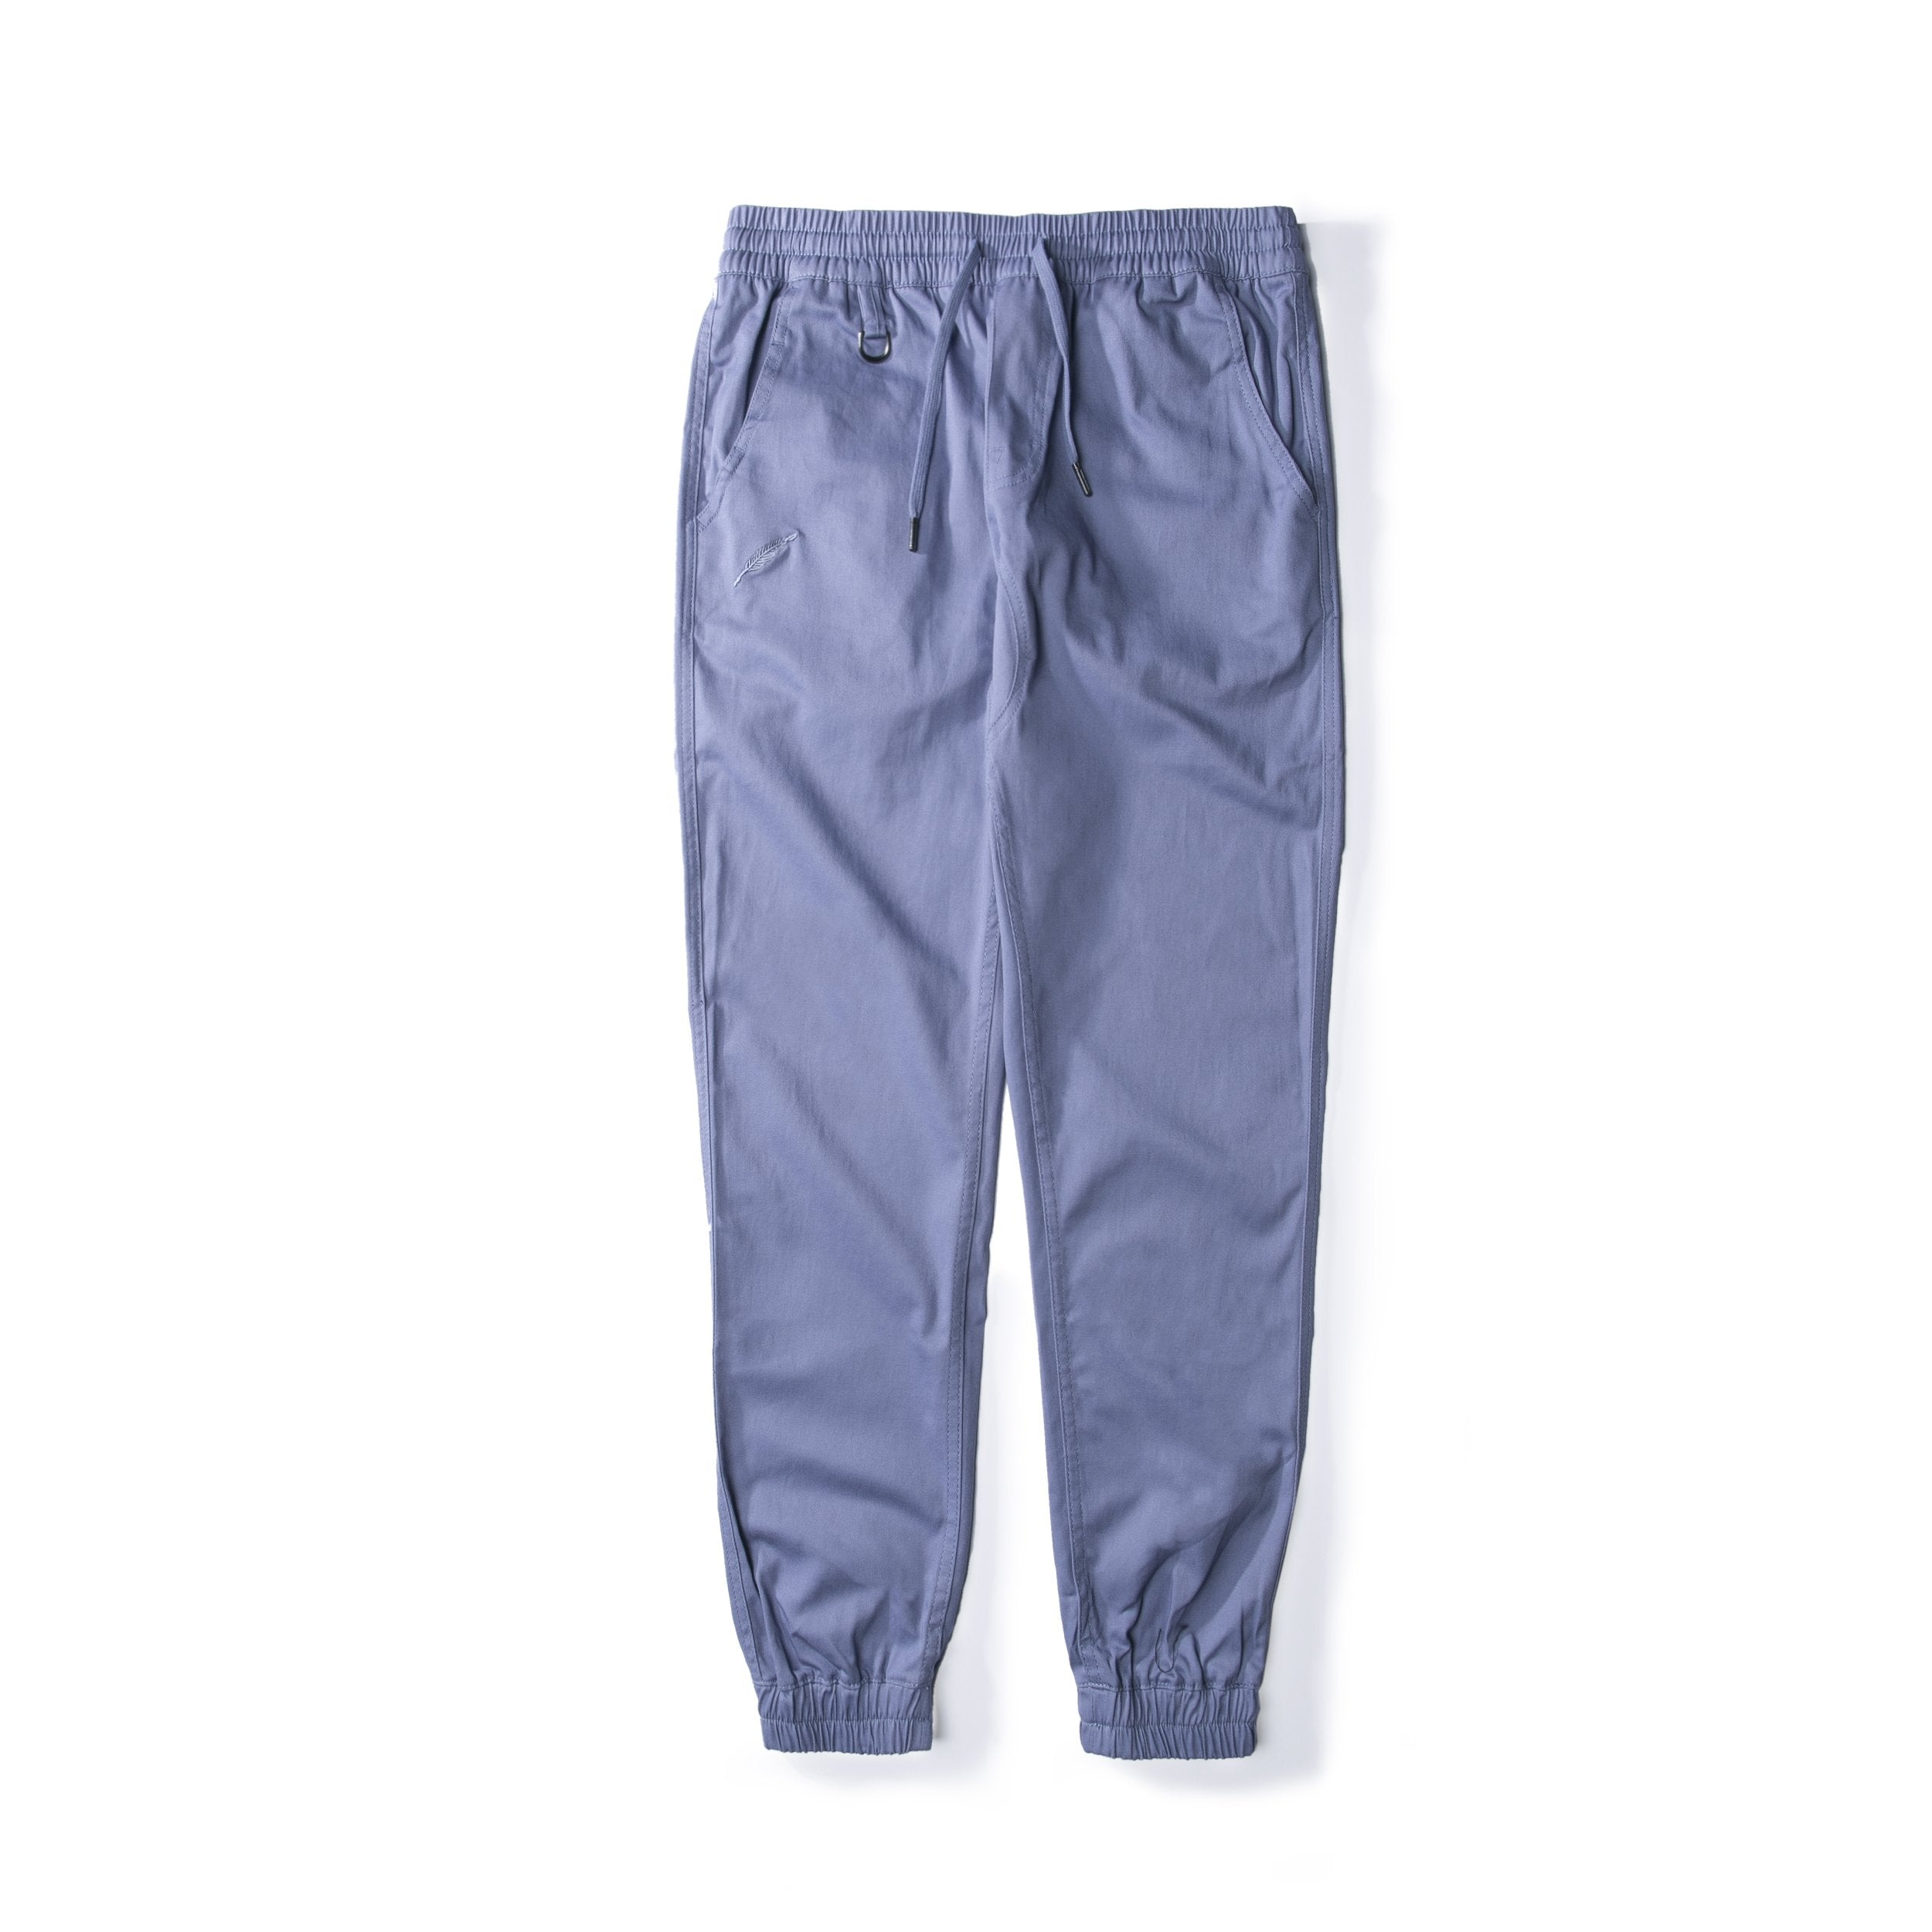 Publish Sprinter Jogger - Silvery Blue-Pants 褲款-Navy Selected Shop